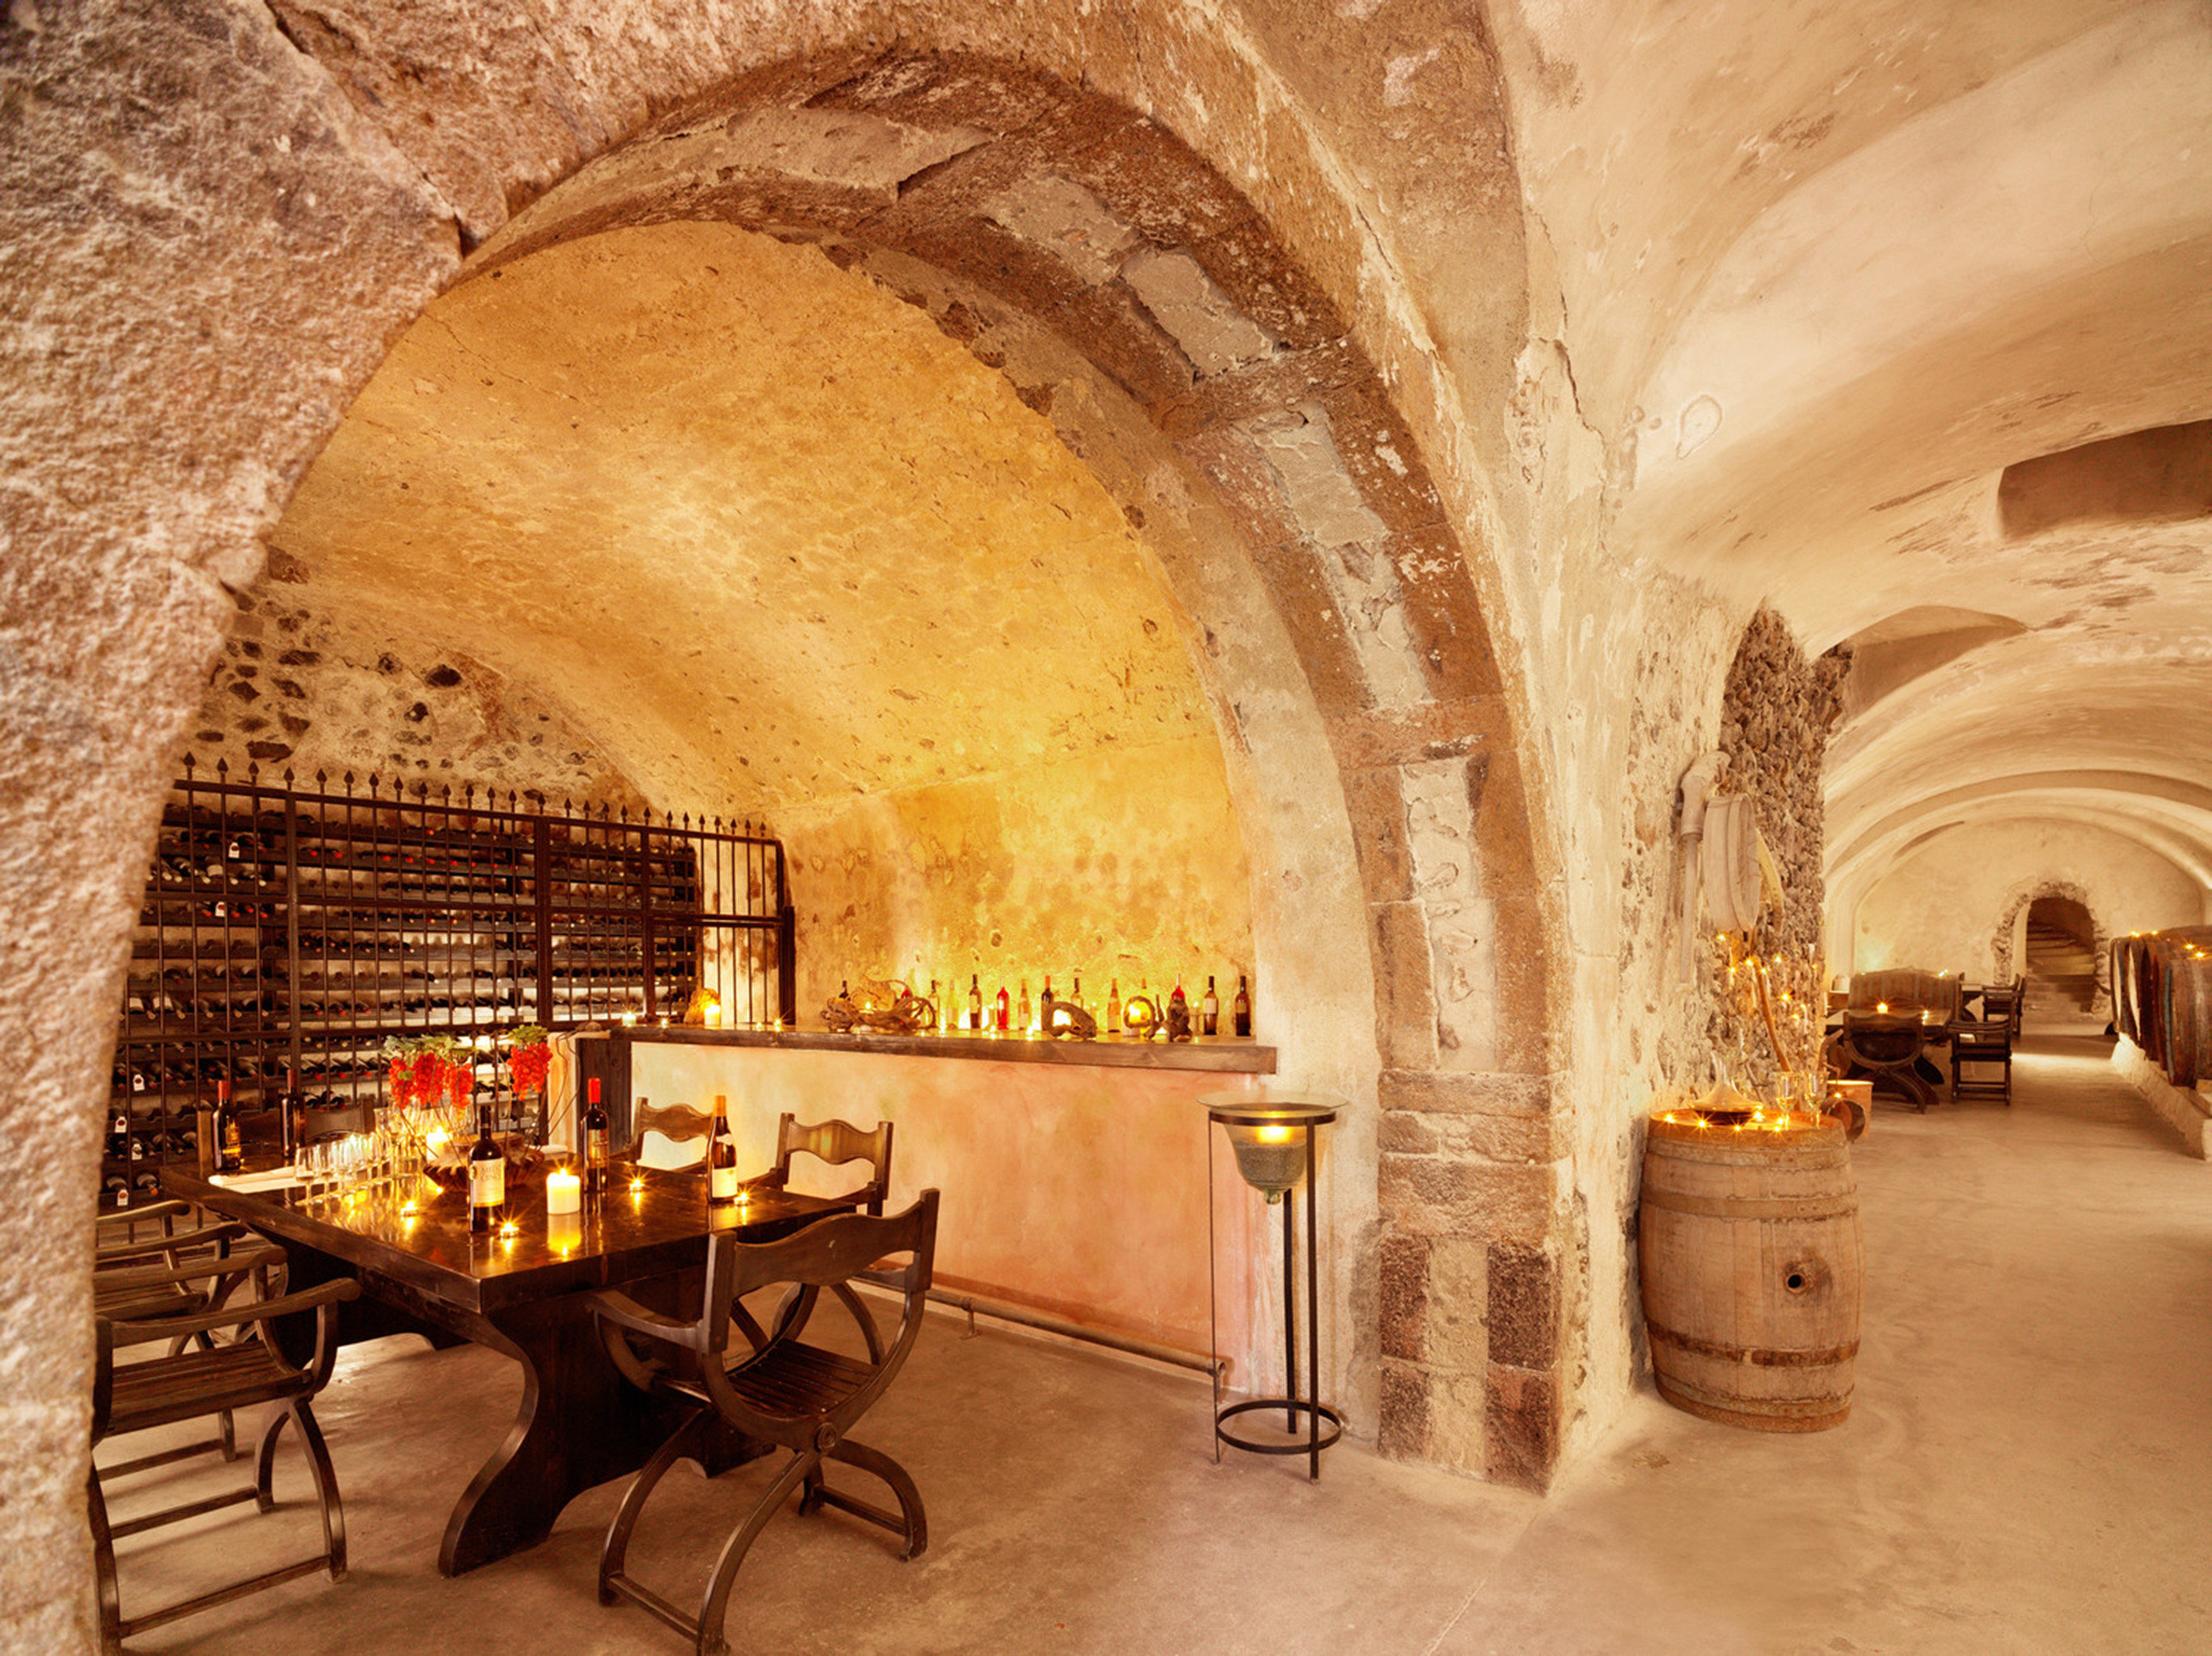 Bar Dining Drink Eat Luxury Romantic chair arch Architecture ancient history crypt vault palace stone